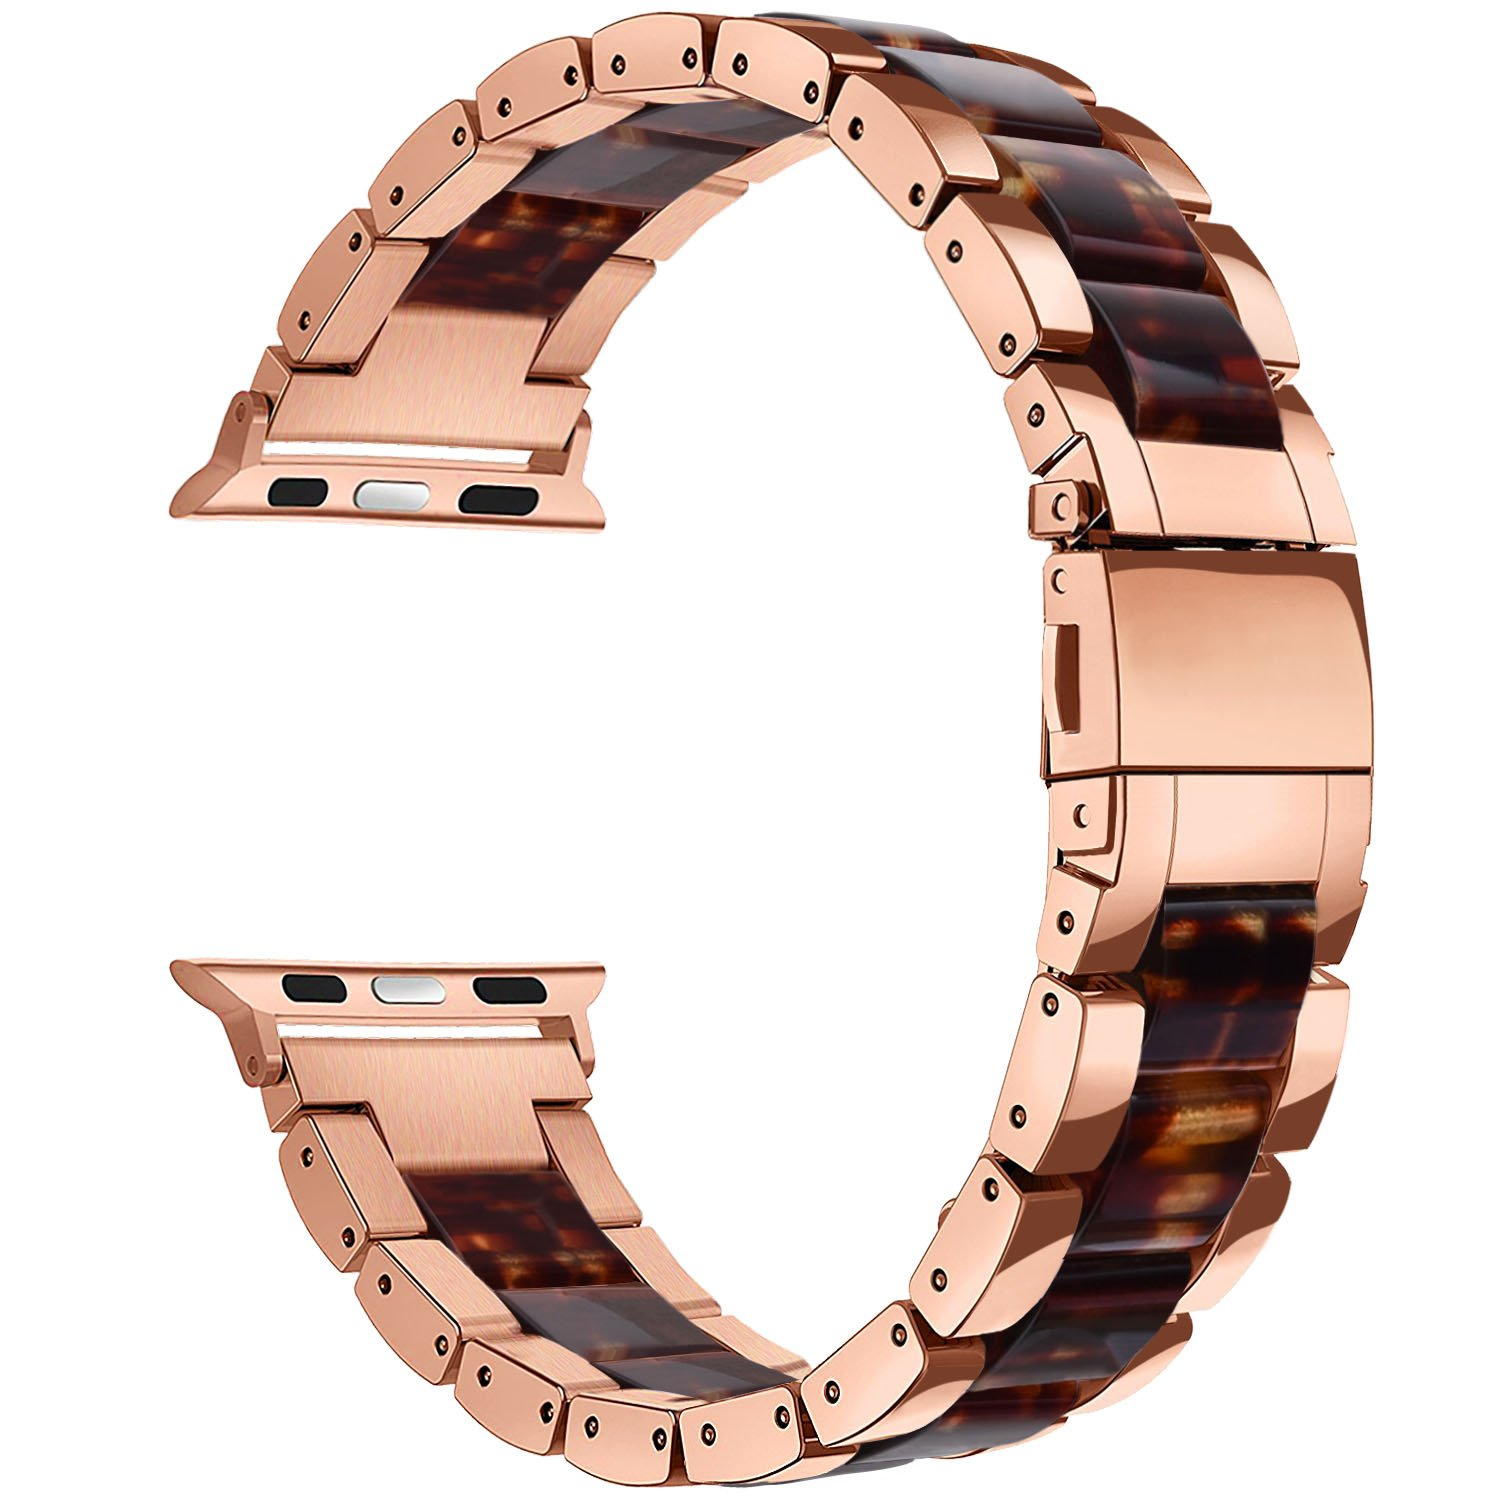 V-MORO Resin Bands Compatible Apple Watch Bands 38mm 40mm iWatch Women Series 4/3/2/1, Luxury Metal Stainless Steel Metal Wristband Bracelet Strap (Tortoise/Rose Gold, 38mm) by V-MORO